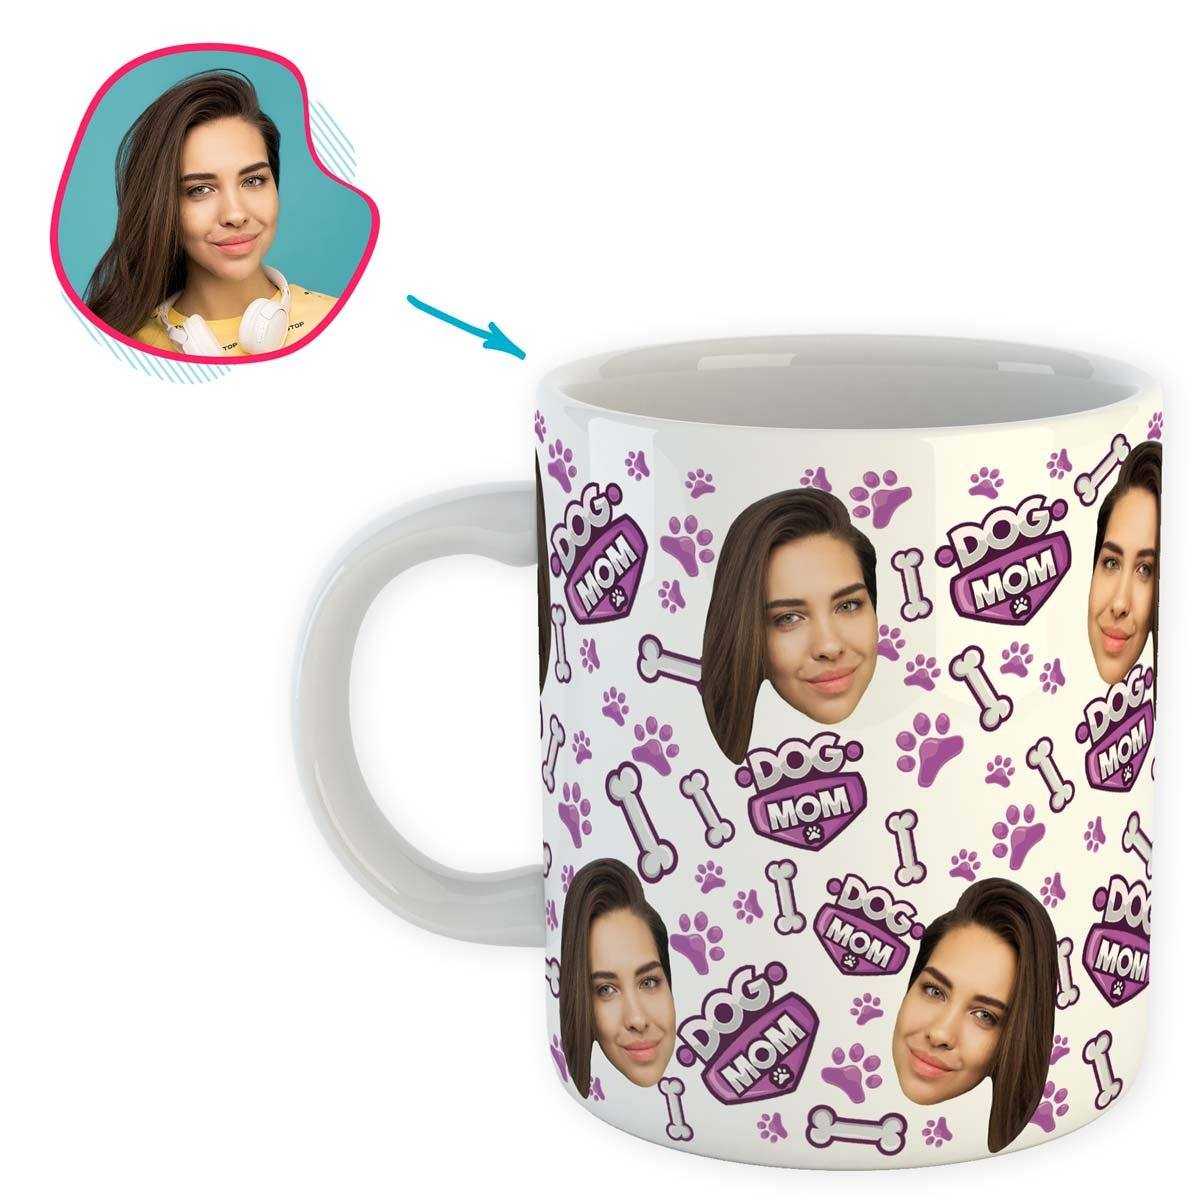 white Dog Mom mug personalized with photo of face printed on it